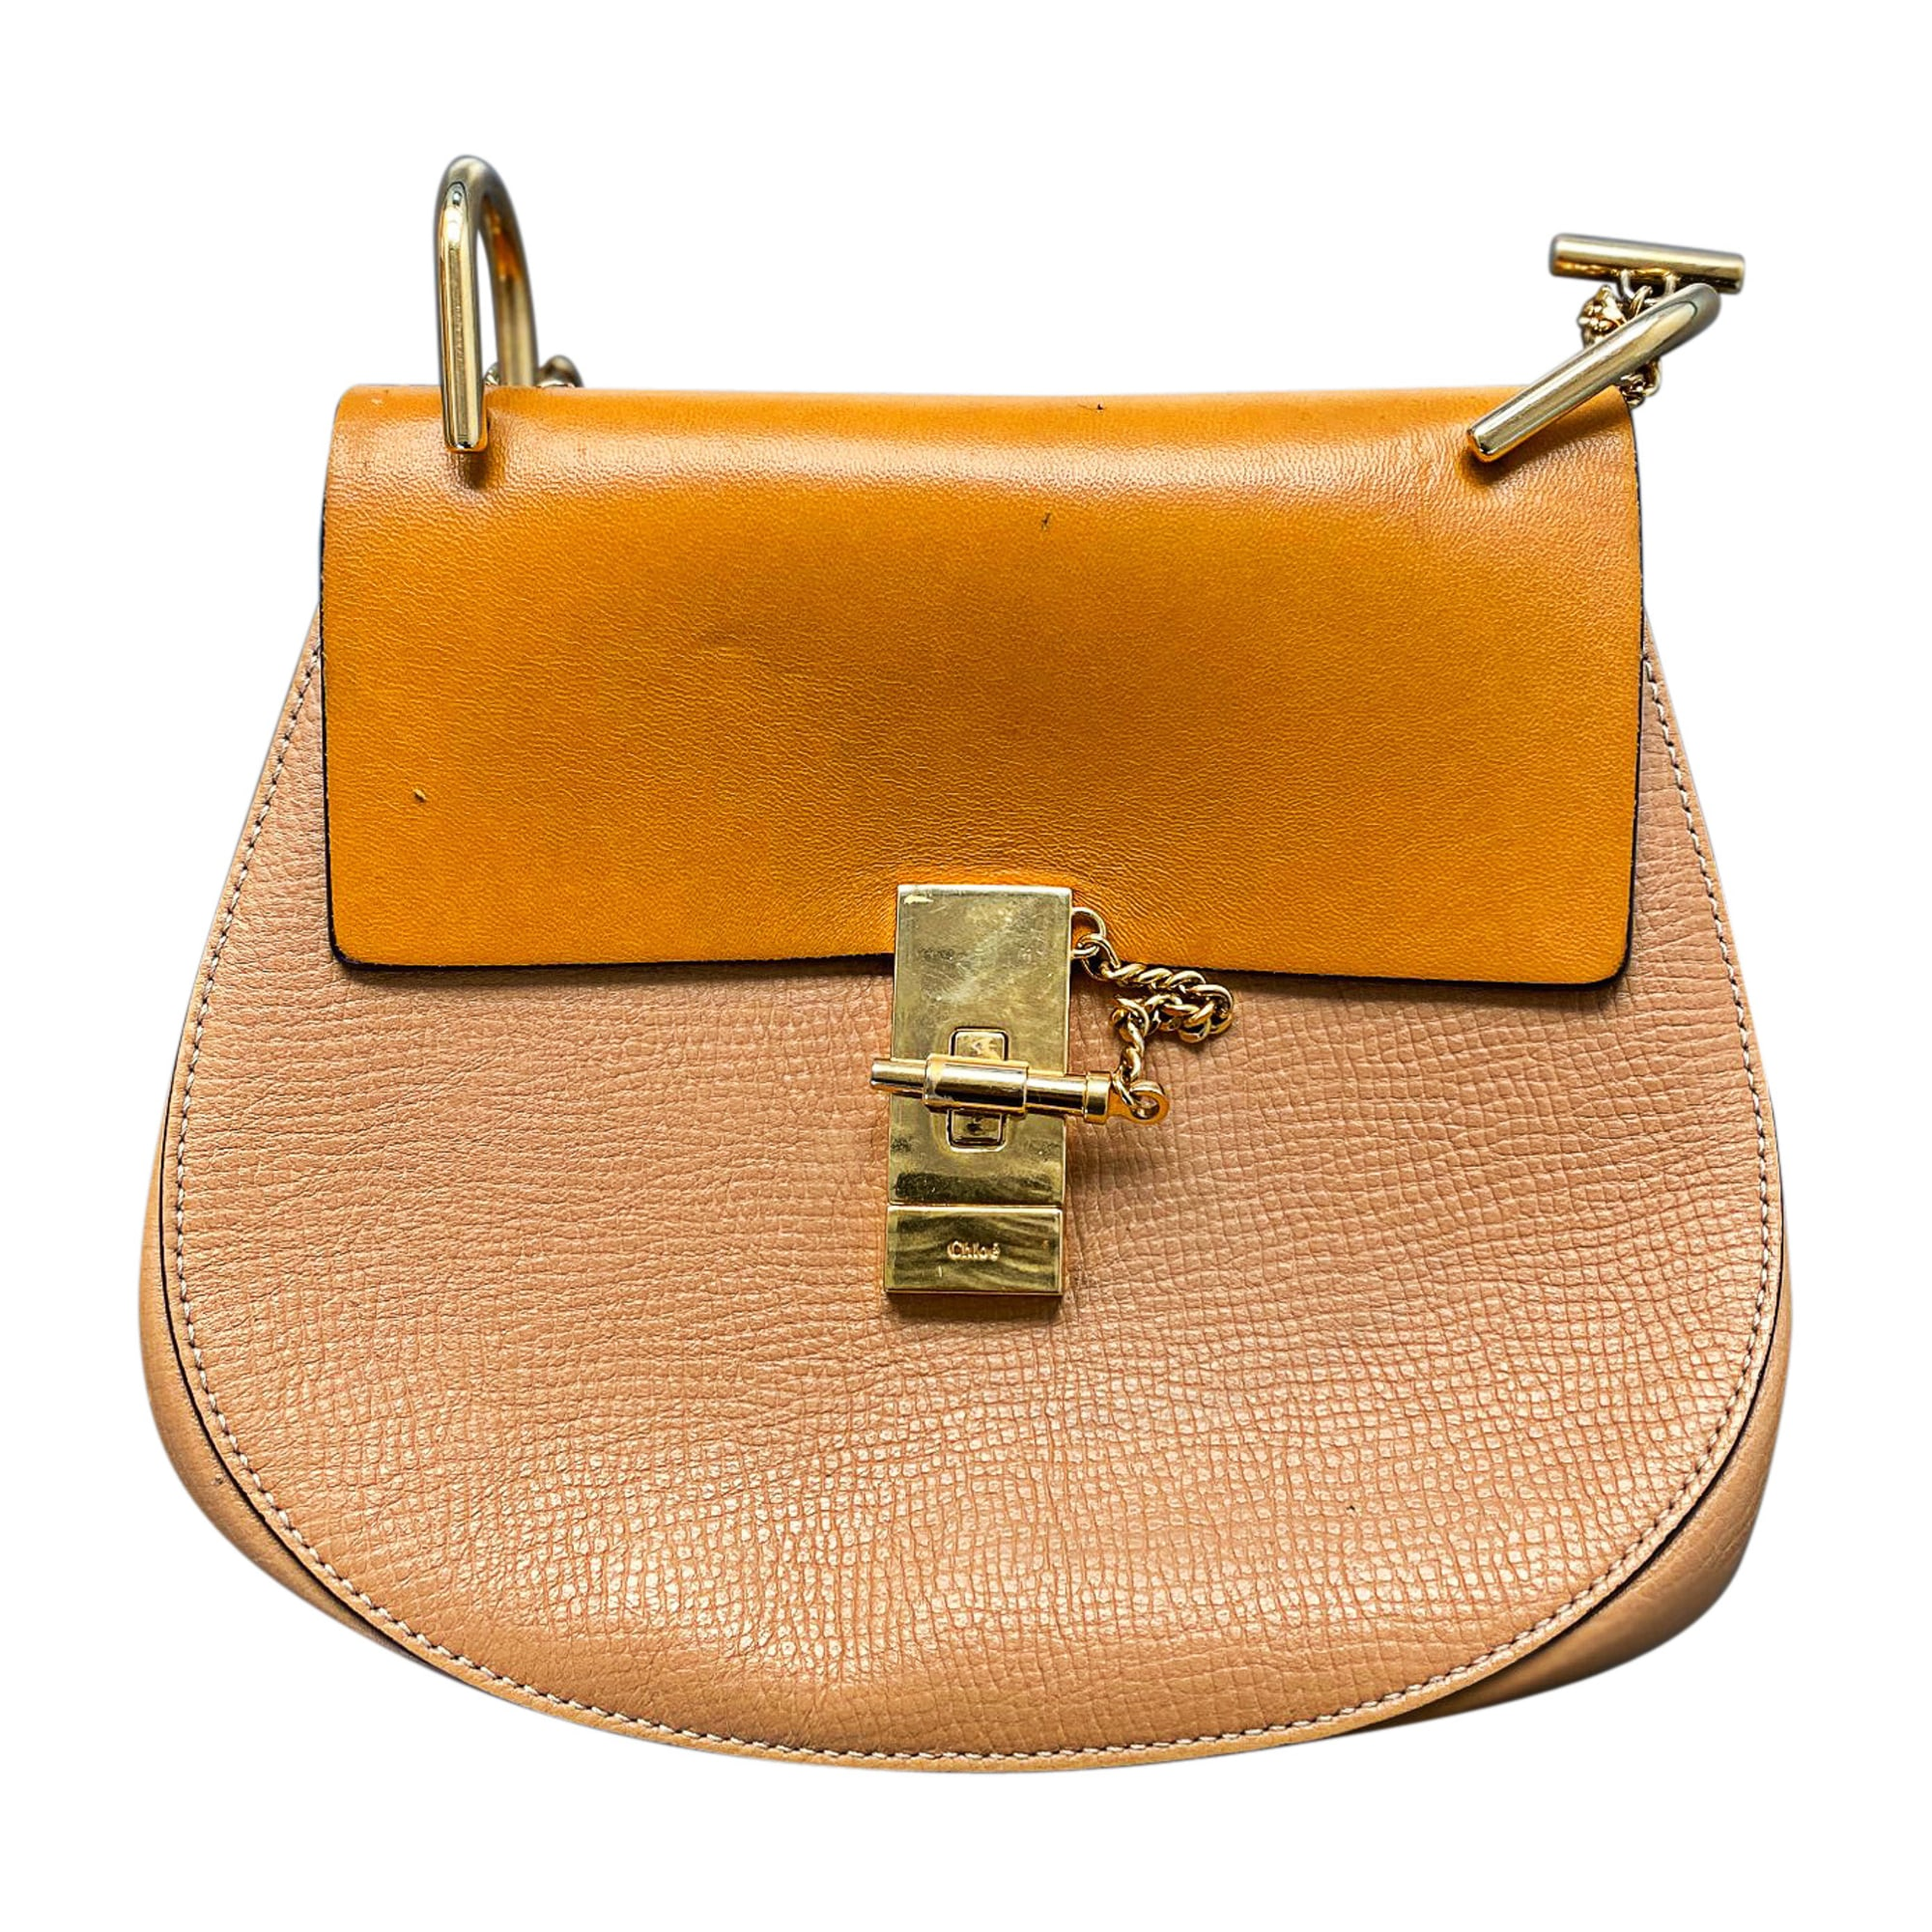 Leather Shoulder Bag CHLOÉ Beige, camel